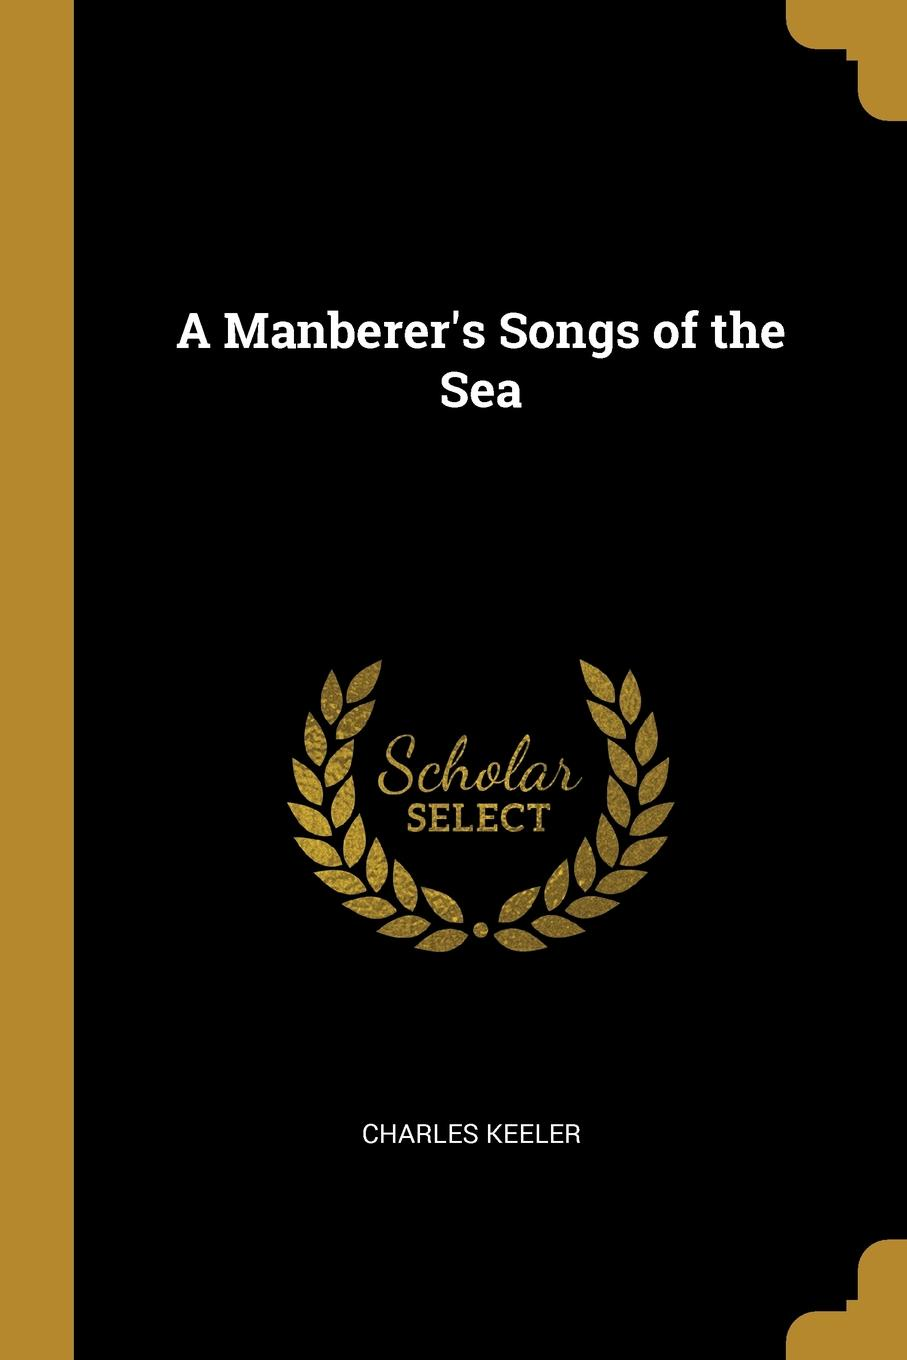 Charles Keeler. A Manberer.s Songs of the Sea